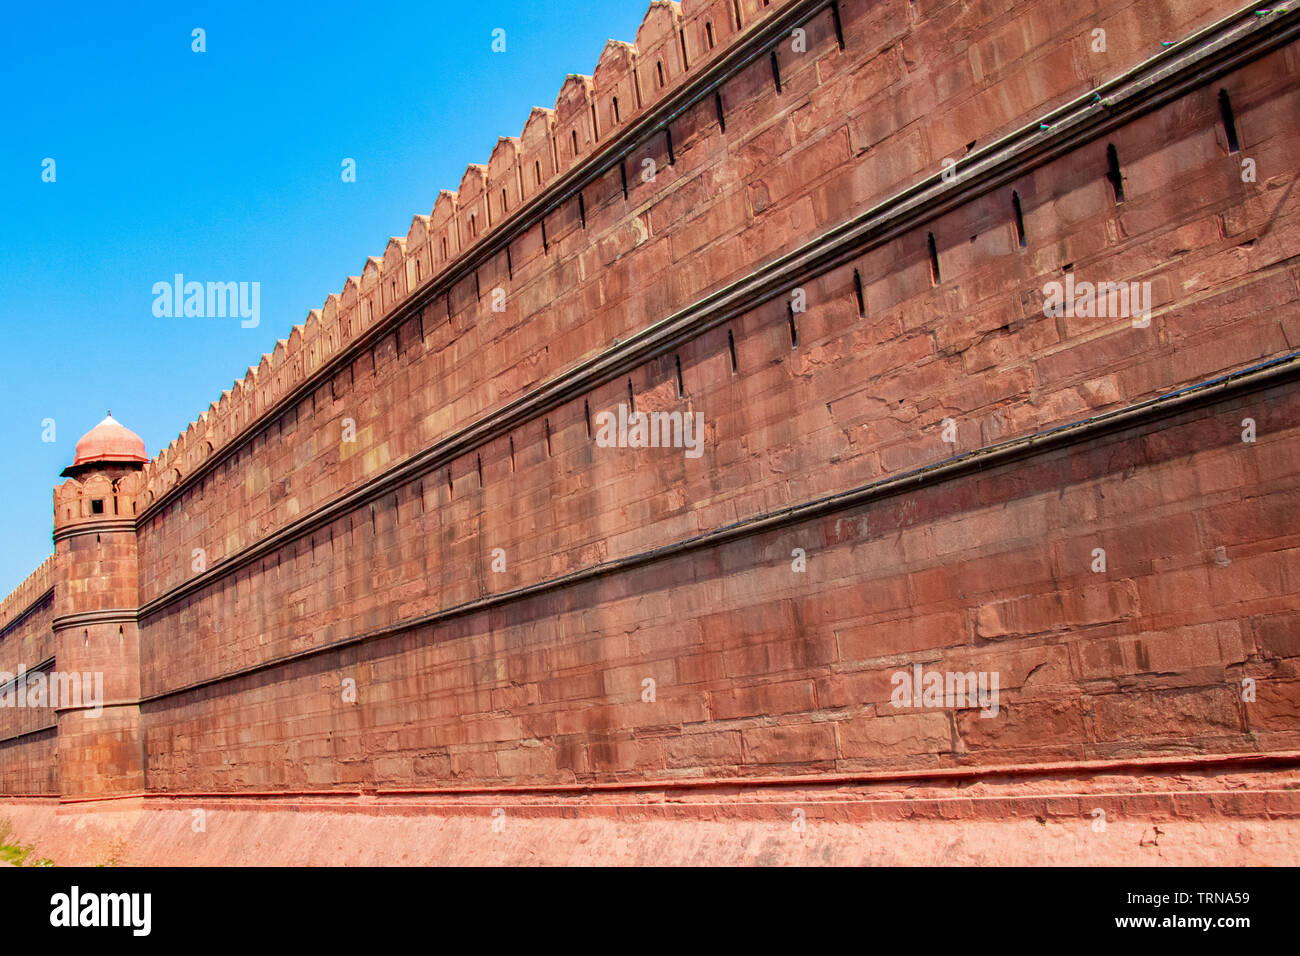 A wall of red fort or Lal Qila in Delhi, India - Stock Image